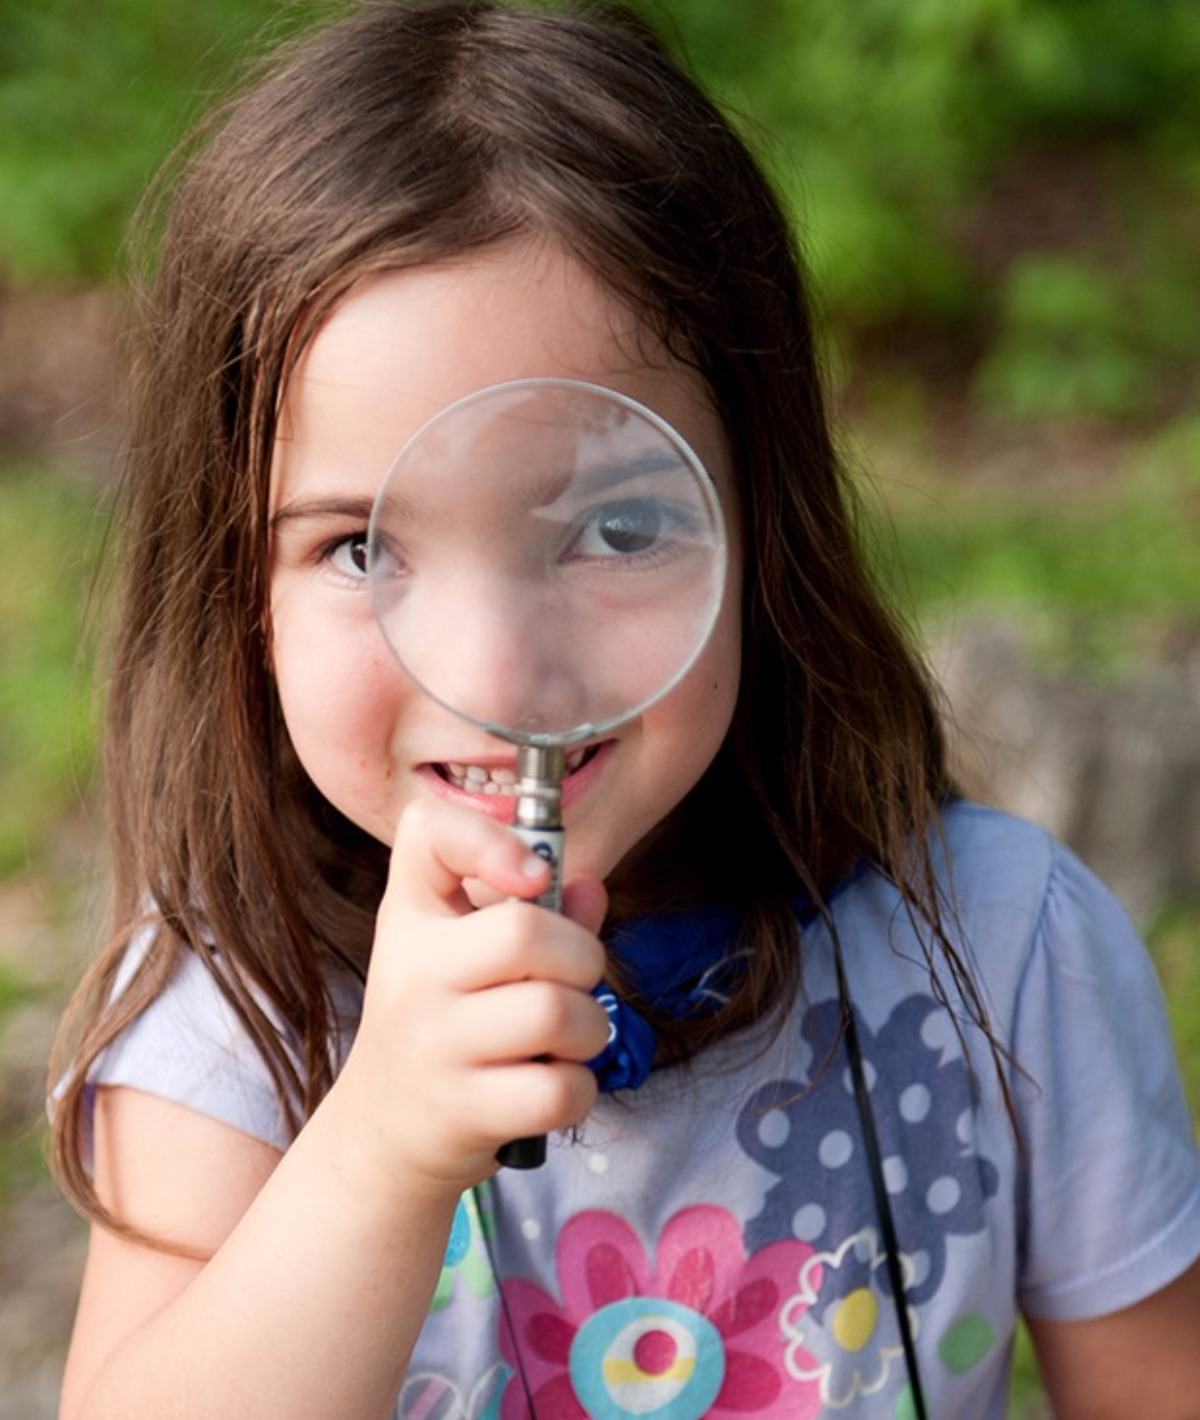 Girl holding magnifying glass - come take a look